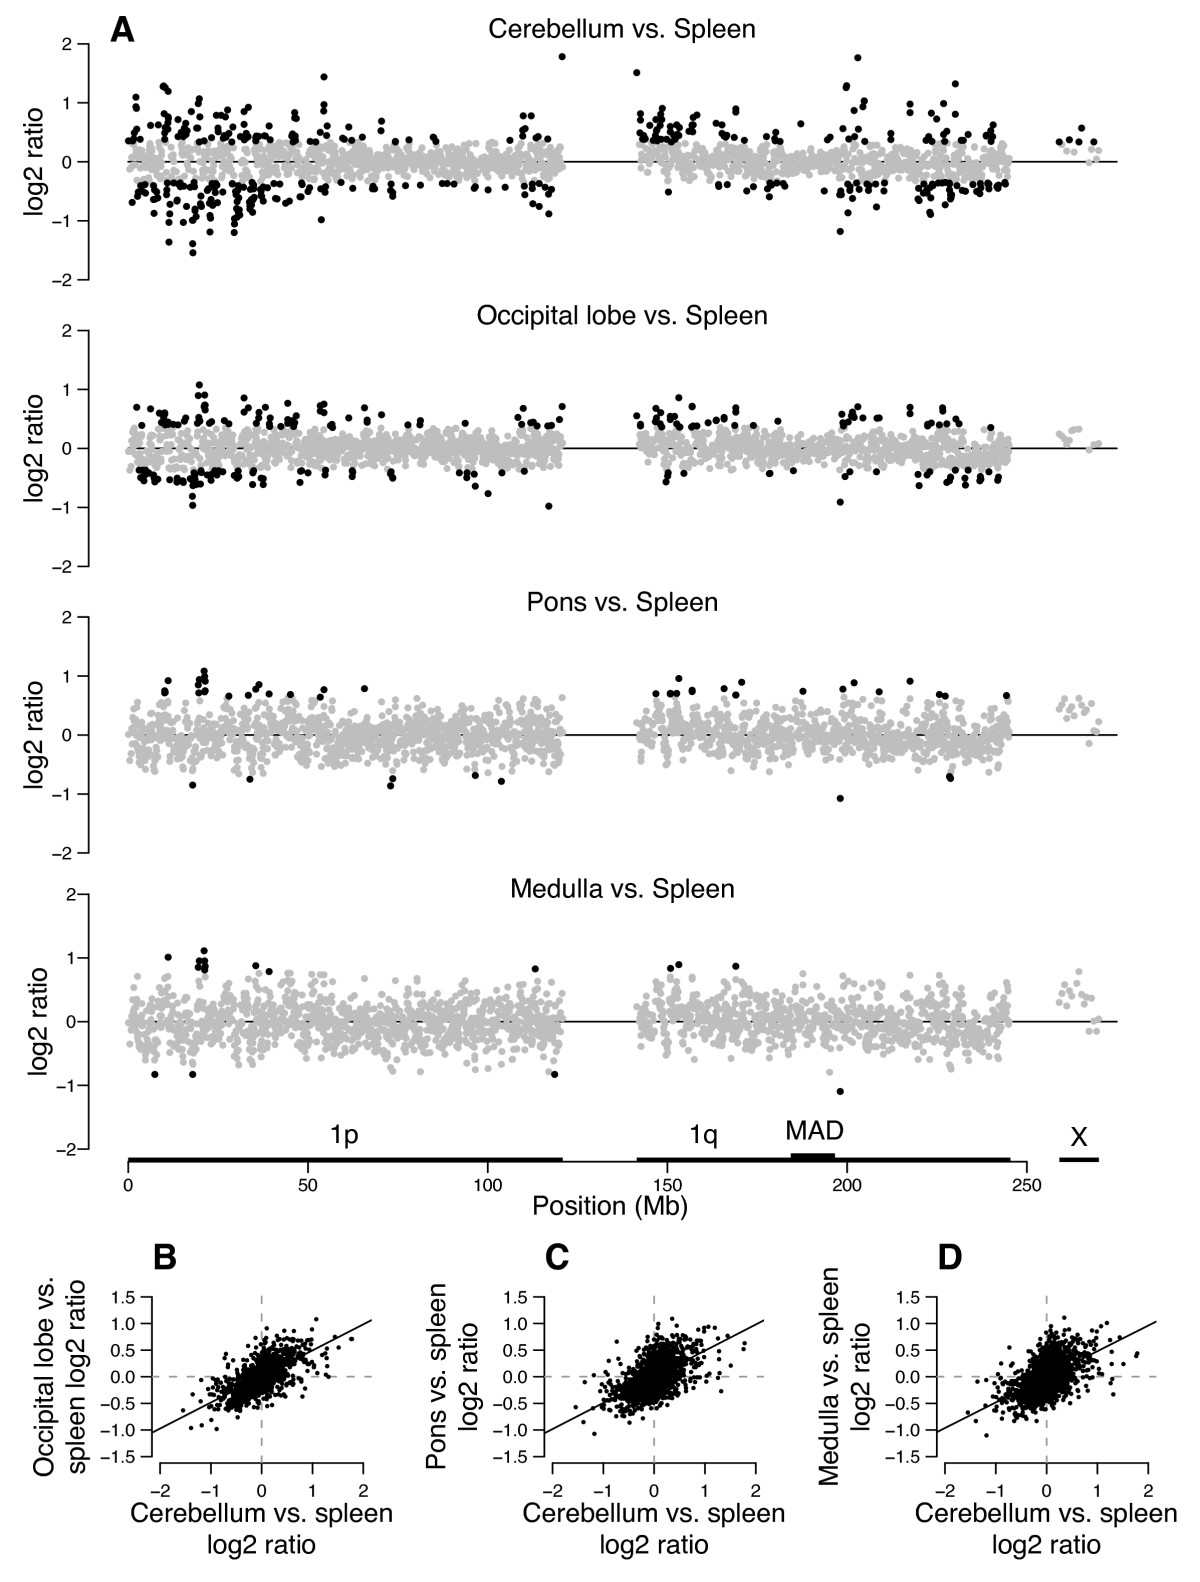 http://static-content.springer.com/image/art%3A10.1186%2F1756-8935-2-7/MediaObjects/13072_2008_Article_17_Fig5_HTML.jpg